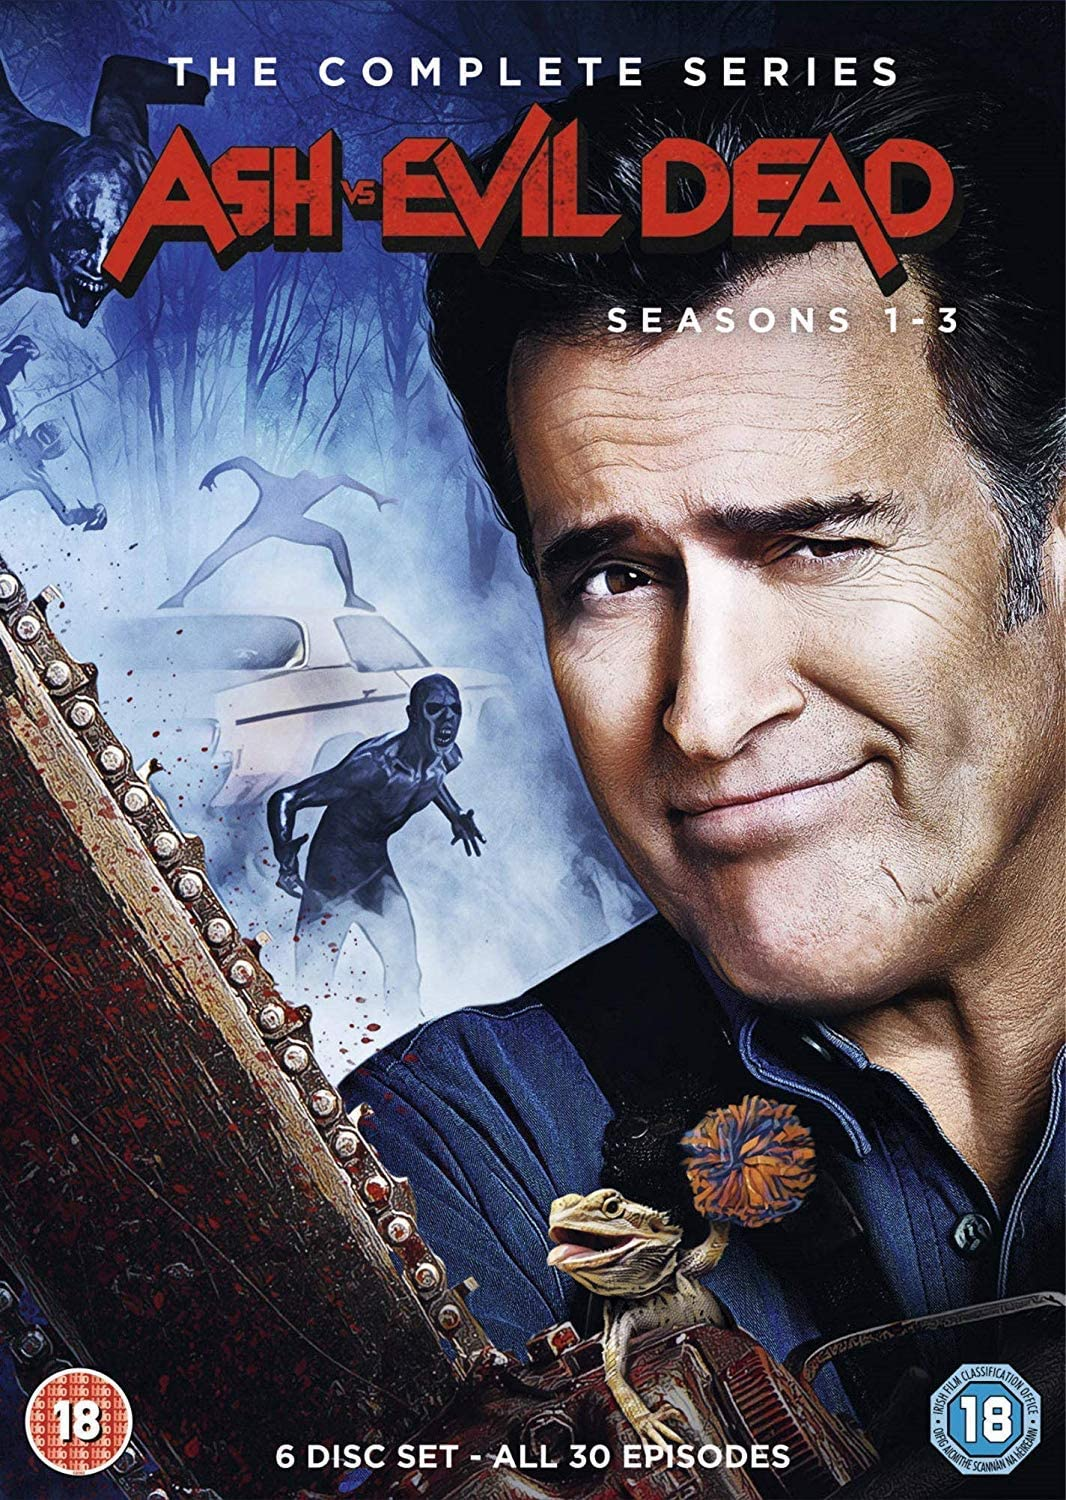 Ash Vs Evil Dead Seasons 1 3 Region 2 Amazon Ca Dvd